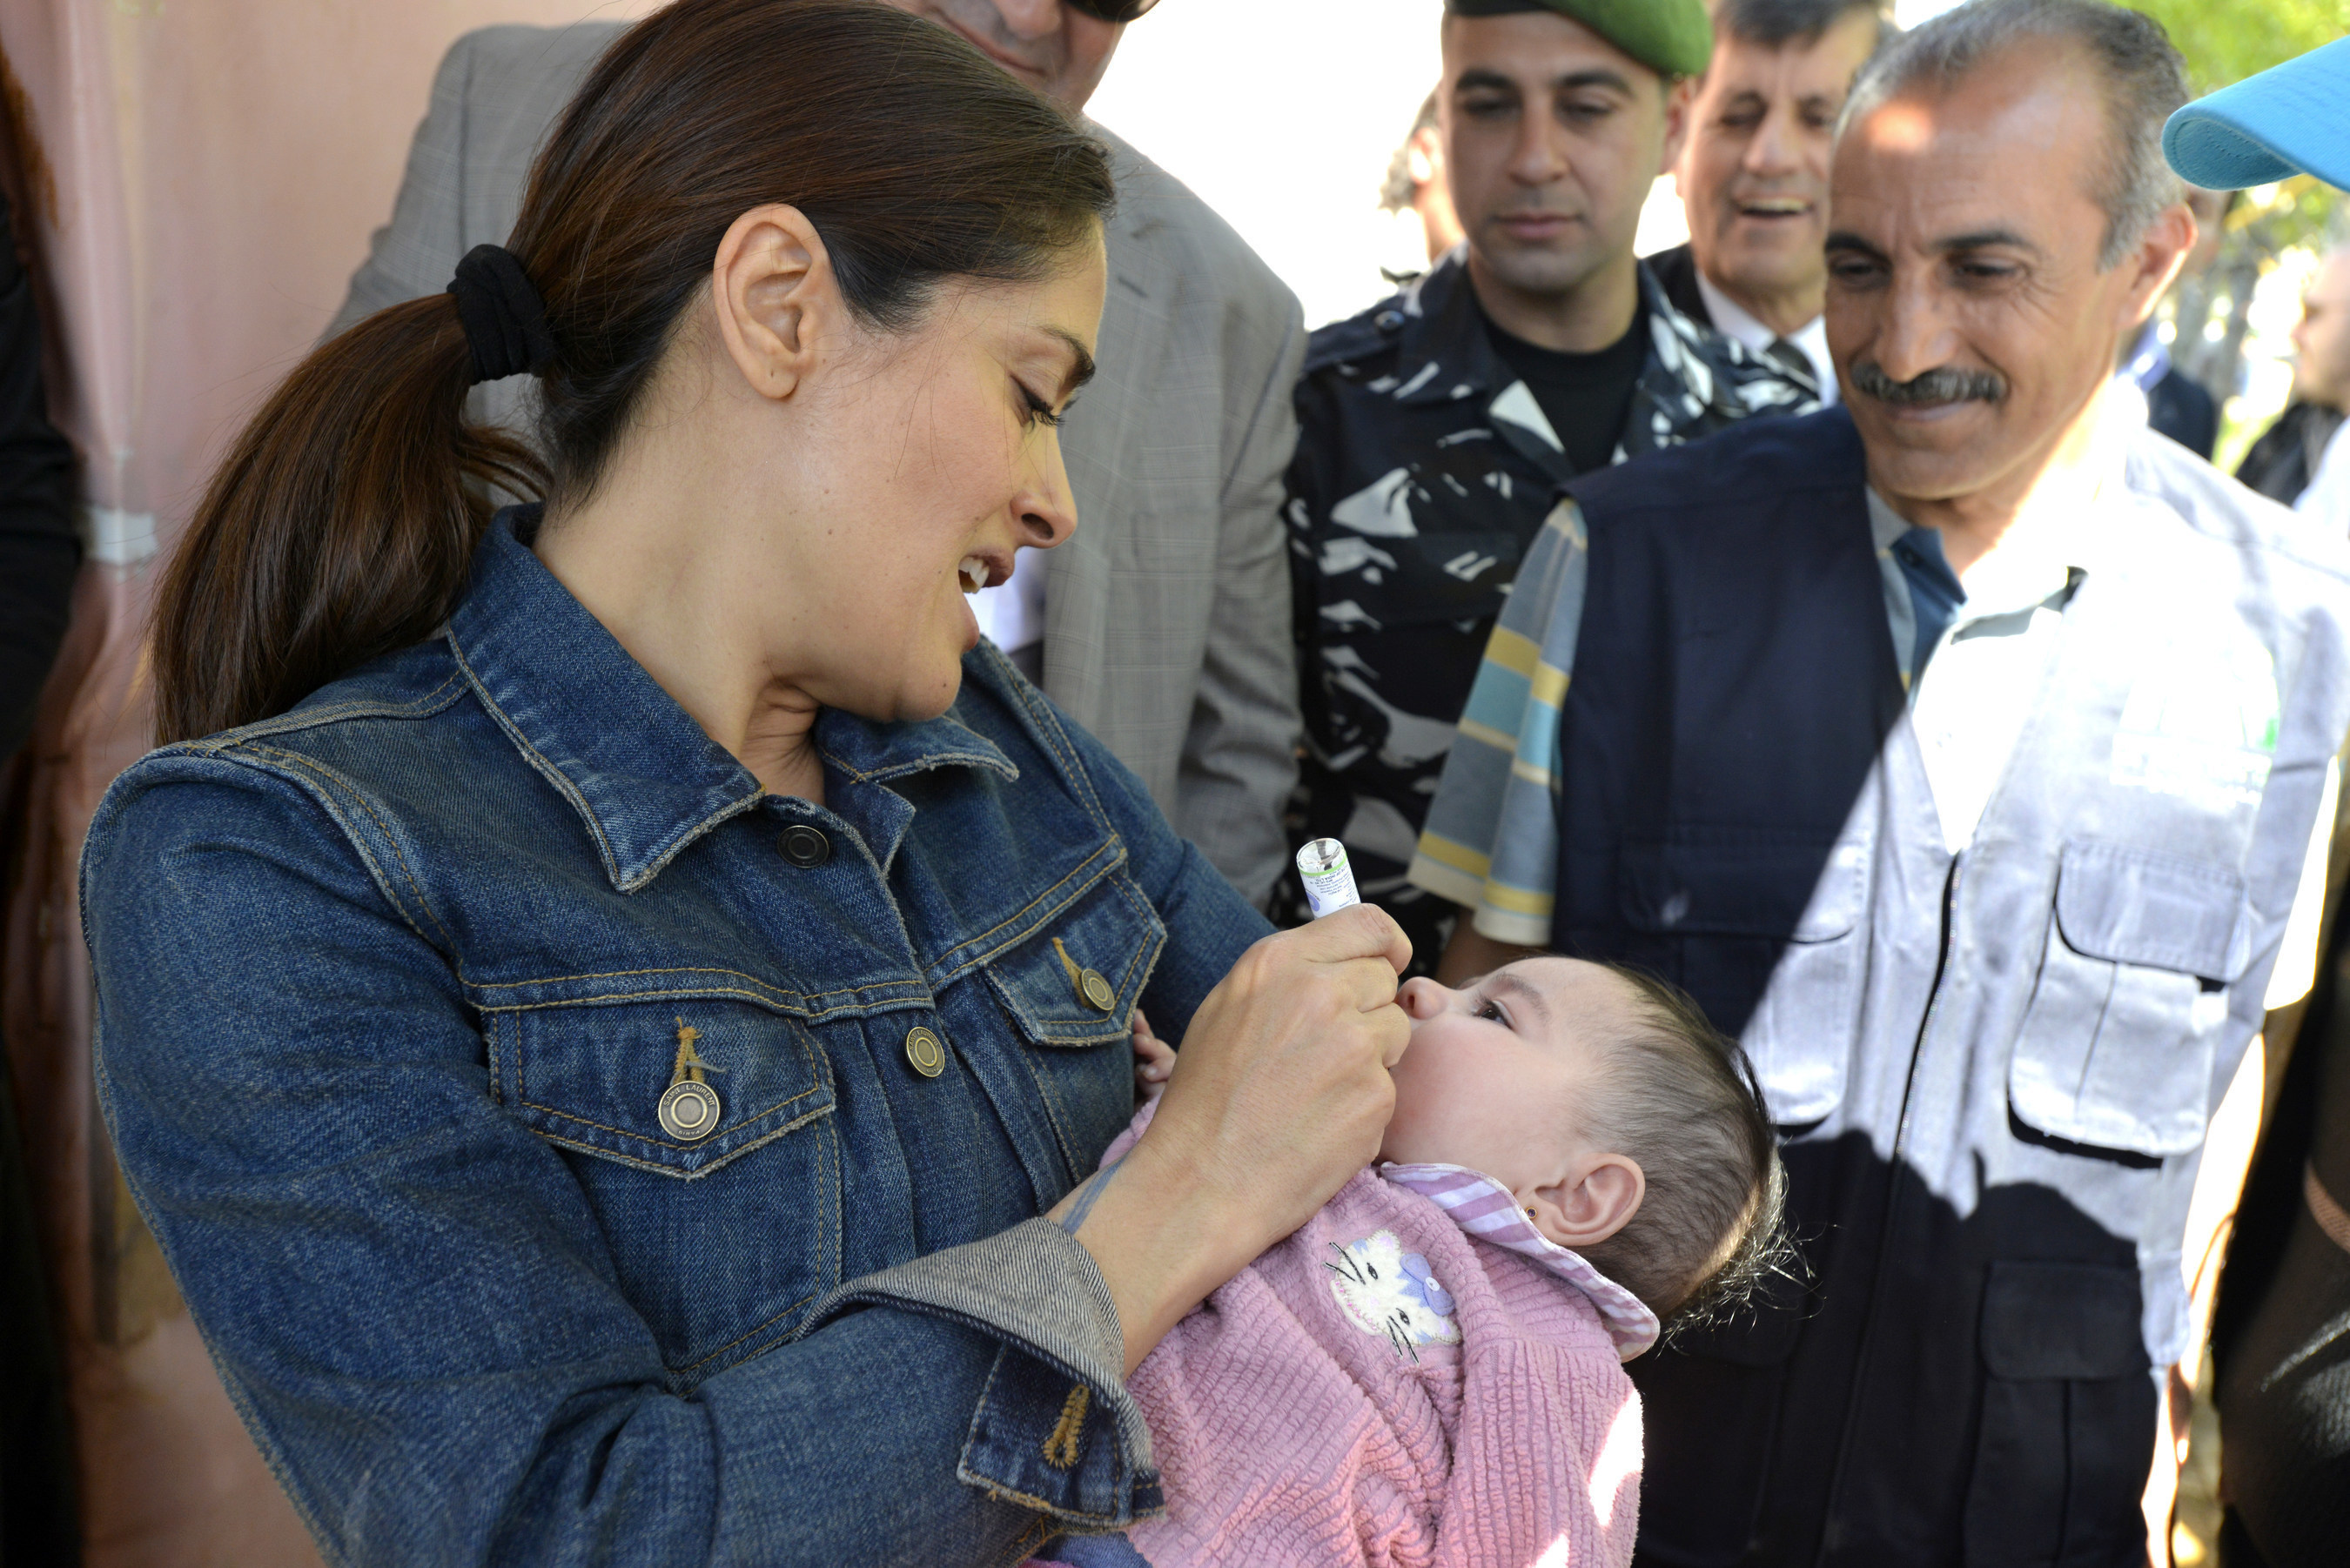 Salma Hayek administers an oral polio vaccine to a Syrian refugee child in Lebanon's Bekaa Valley with UNICEF. As part of her visit to the region, Hayek witnessed a UNICEF-supported polio immunization campaign targeting high risk areas to protect nearly 190,000 children under the age of five from the crippling disease. Hayek also helped launch Gucci's CHIME for the Children of Syria, a fundraising appeal to support children and families affected by the crisis in Syria.